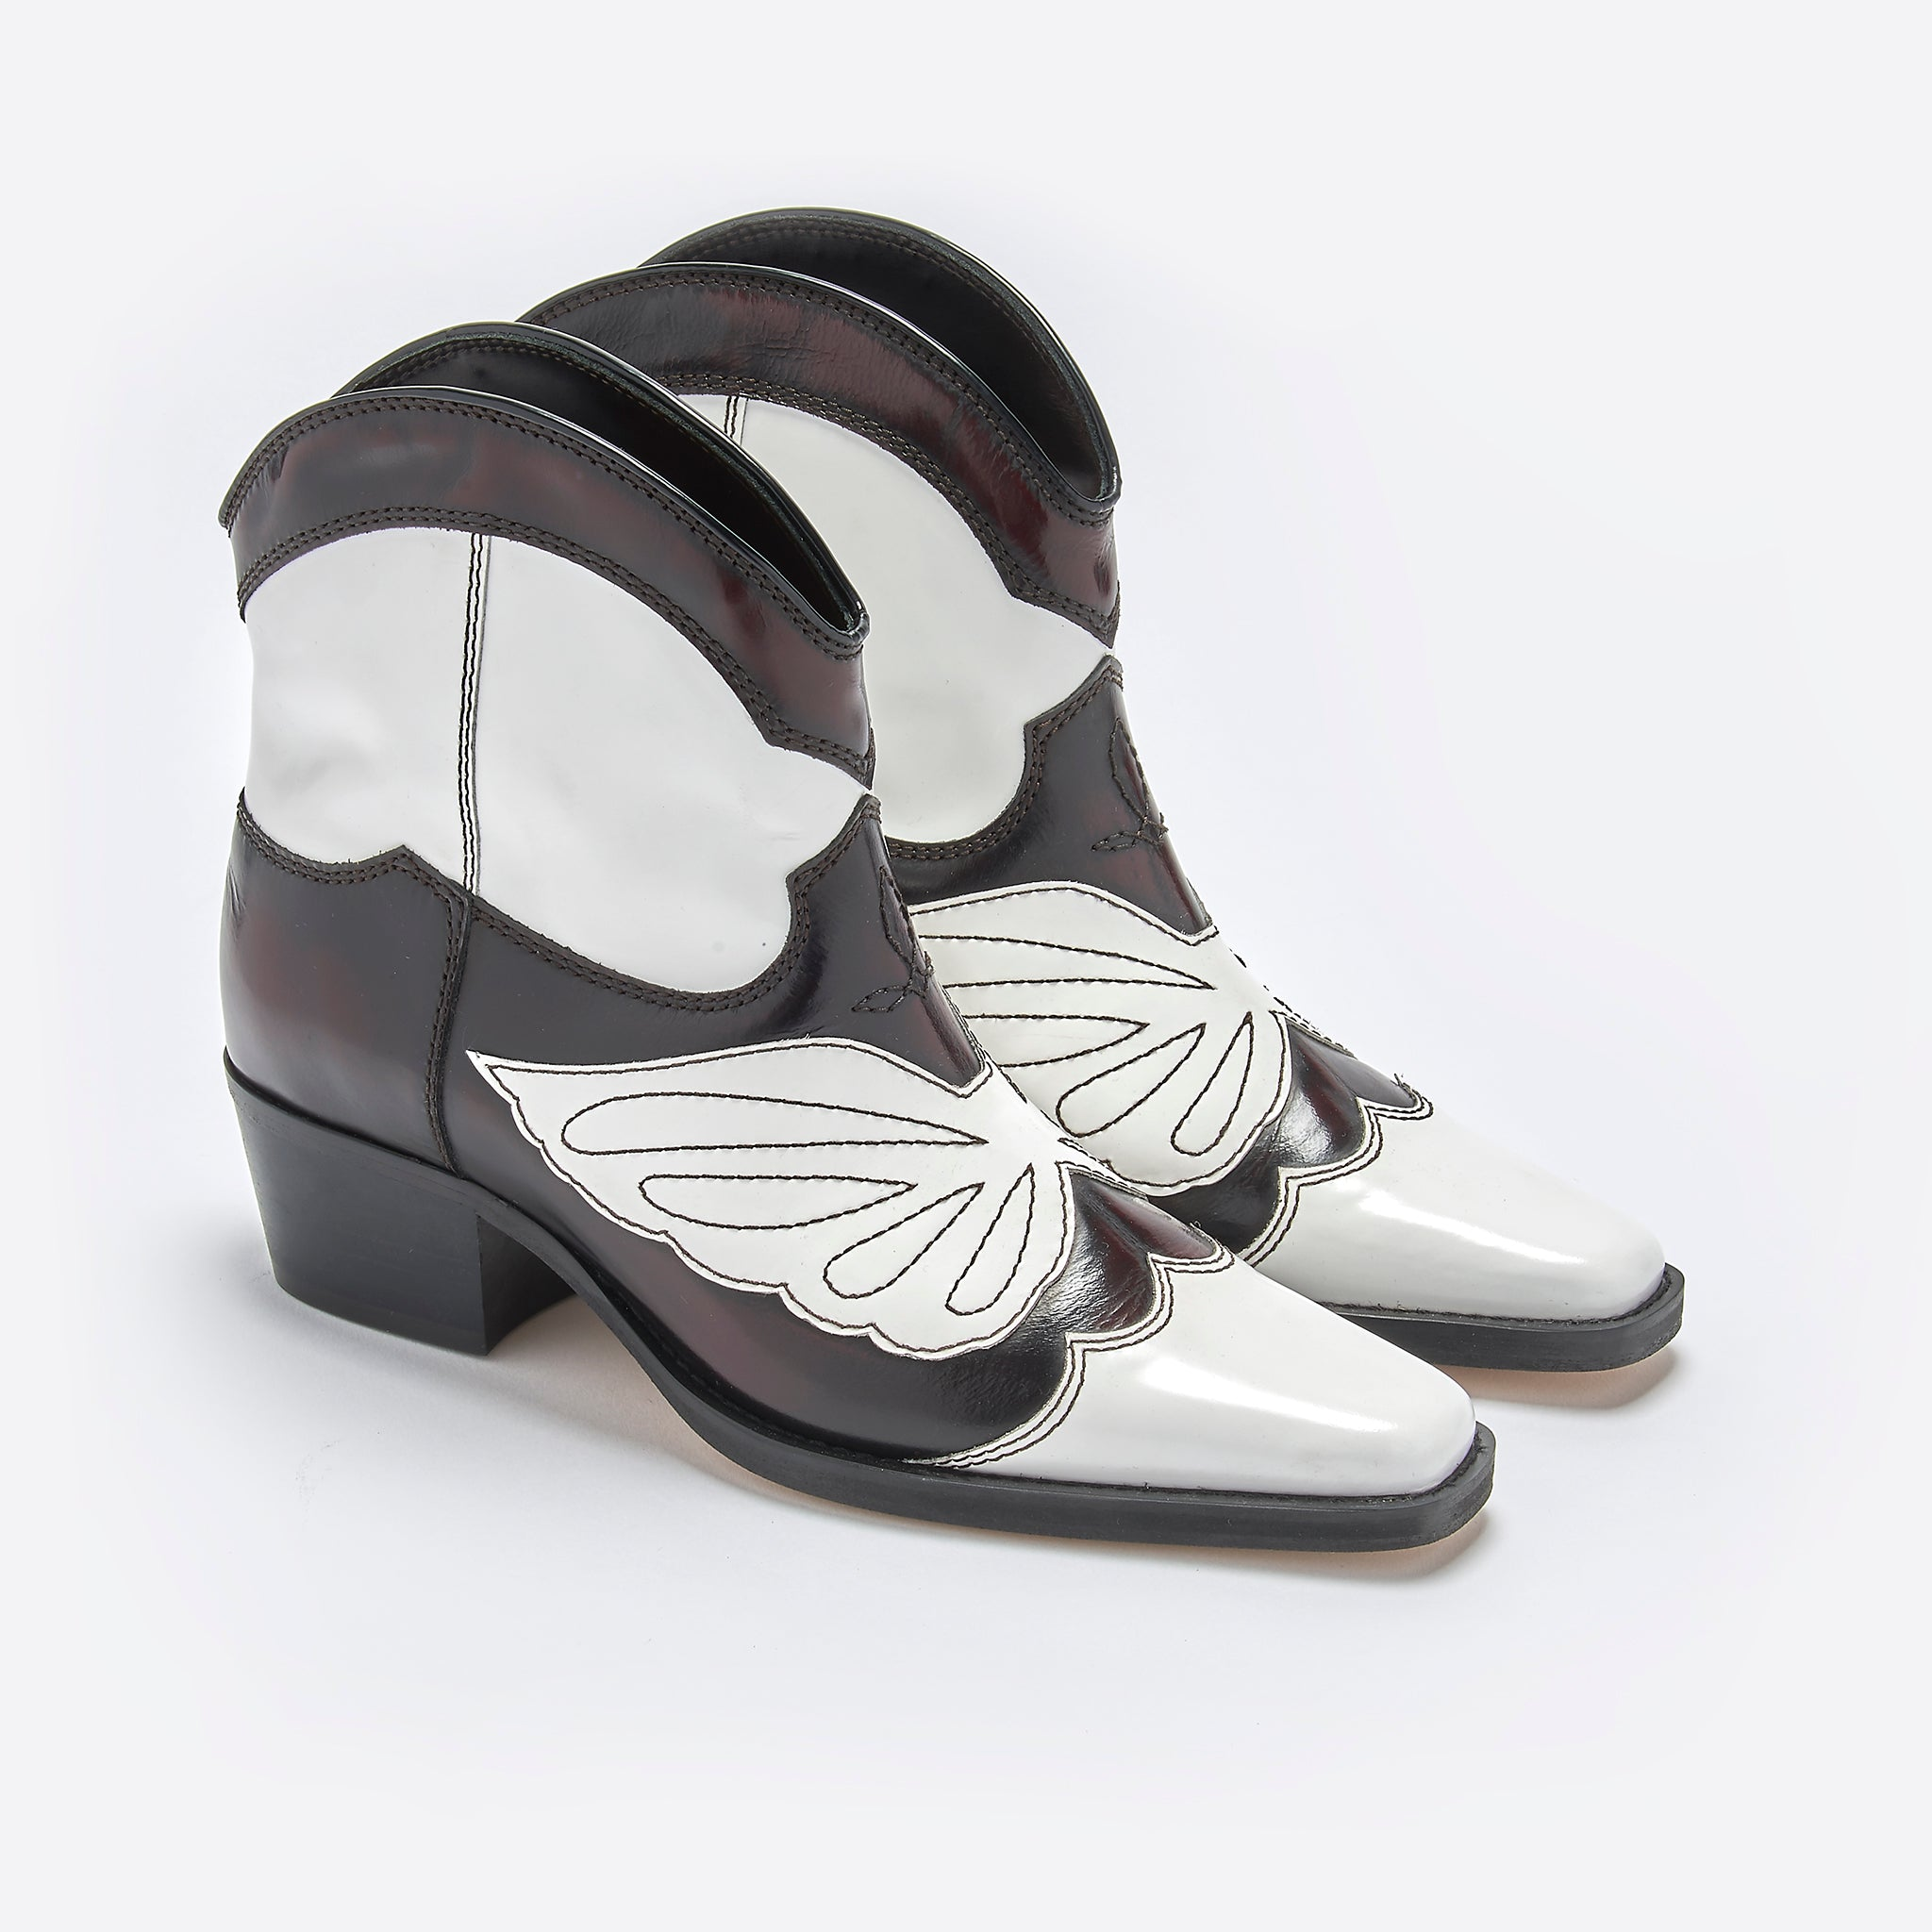 Ganni Meg Boot in Dark Brown and White